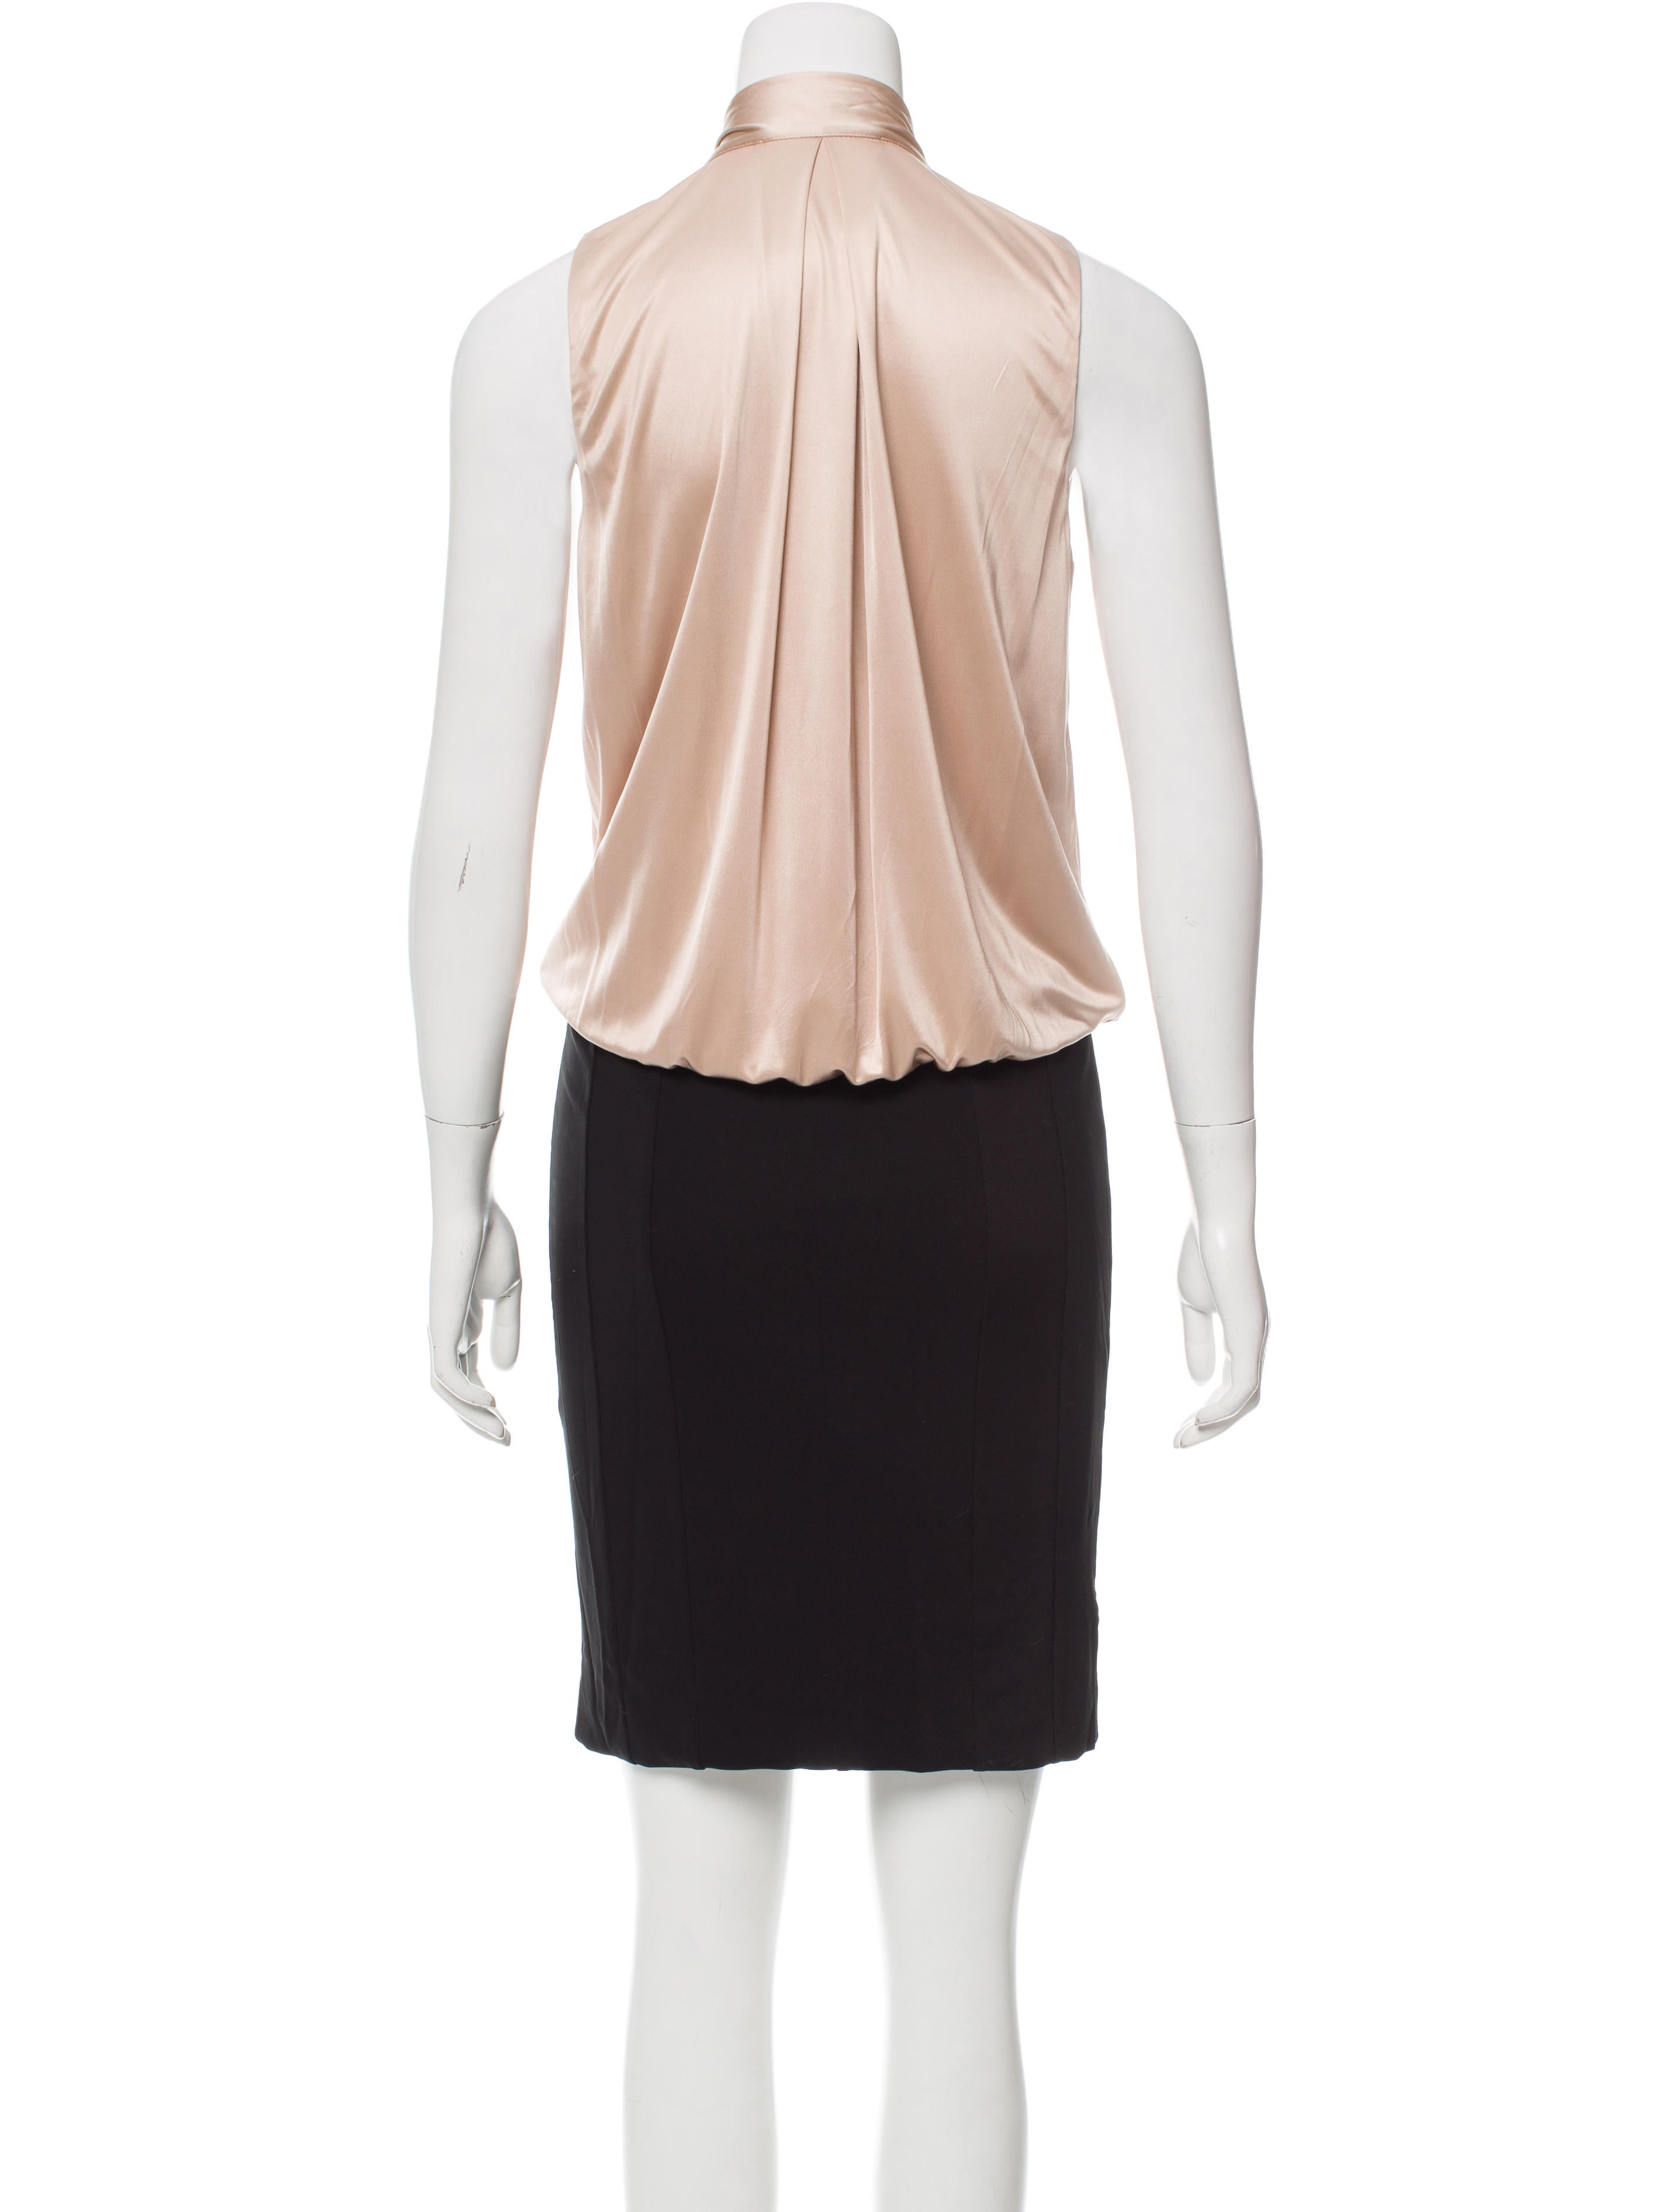 Gucci Tie-Neck Cocktail Dress - Clothing - GUC156918 | The RealReal